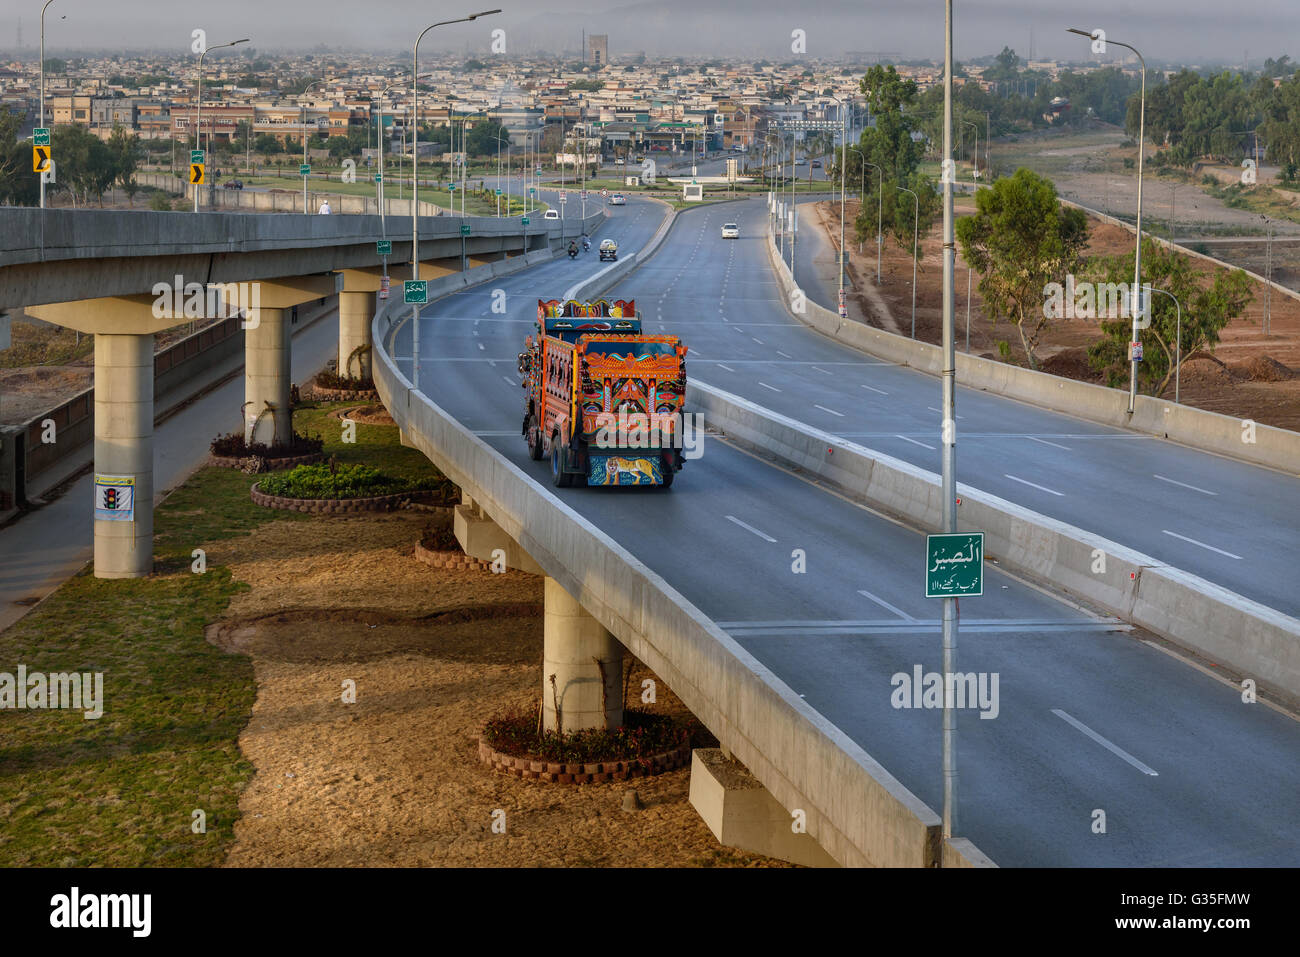 The flyover in Peshawar Pakistan would regulate traffic flow on Pak-Afghan highway. - Stock Image